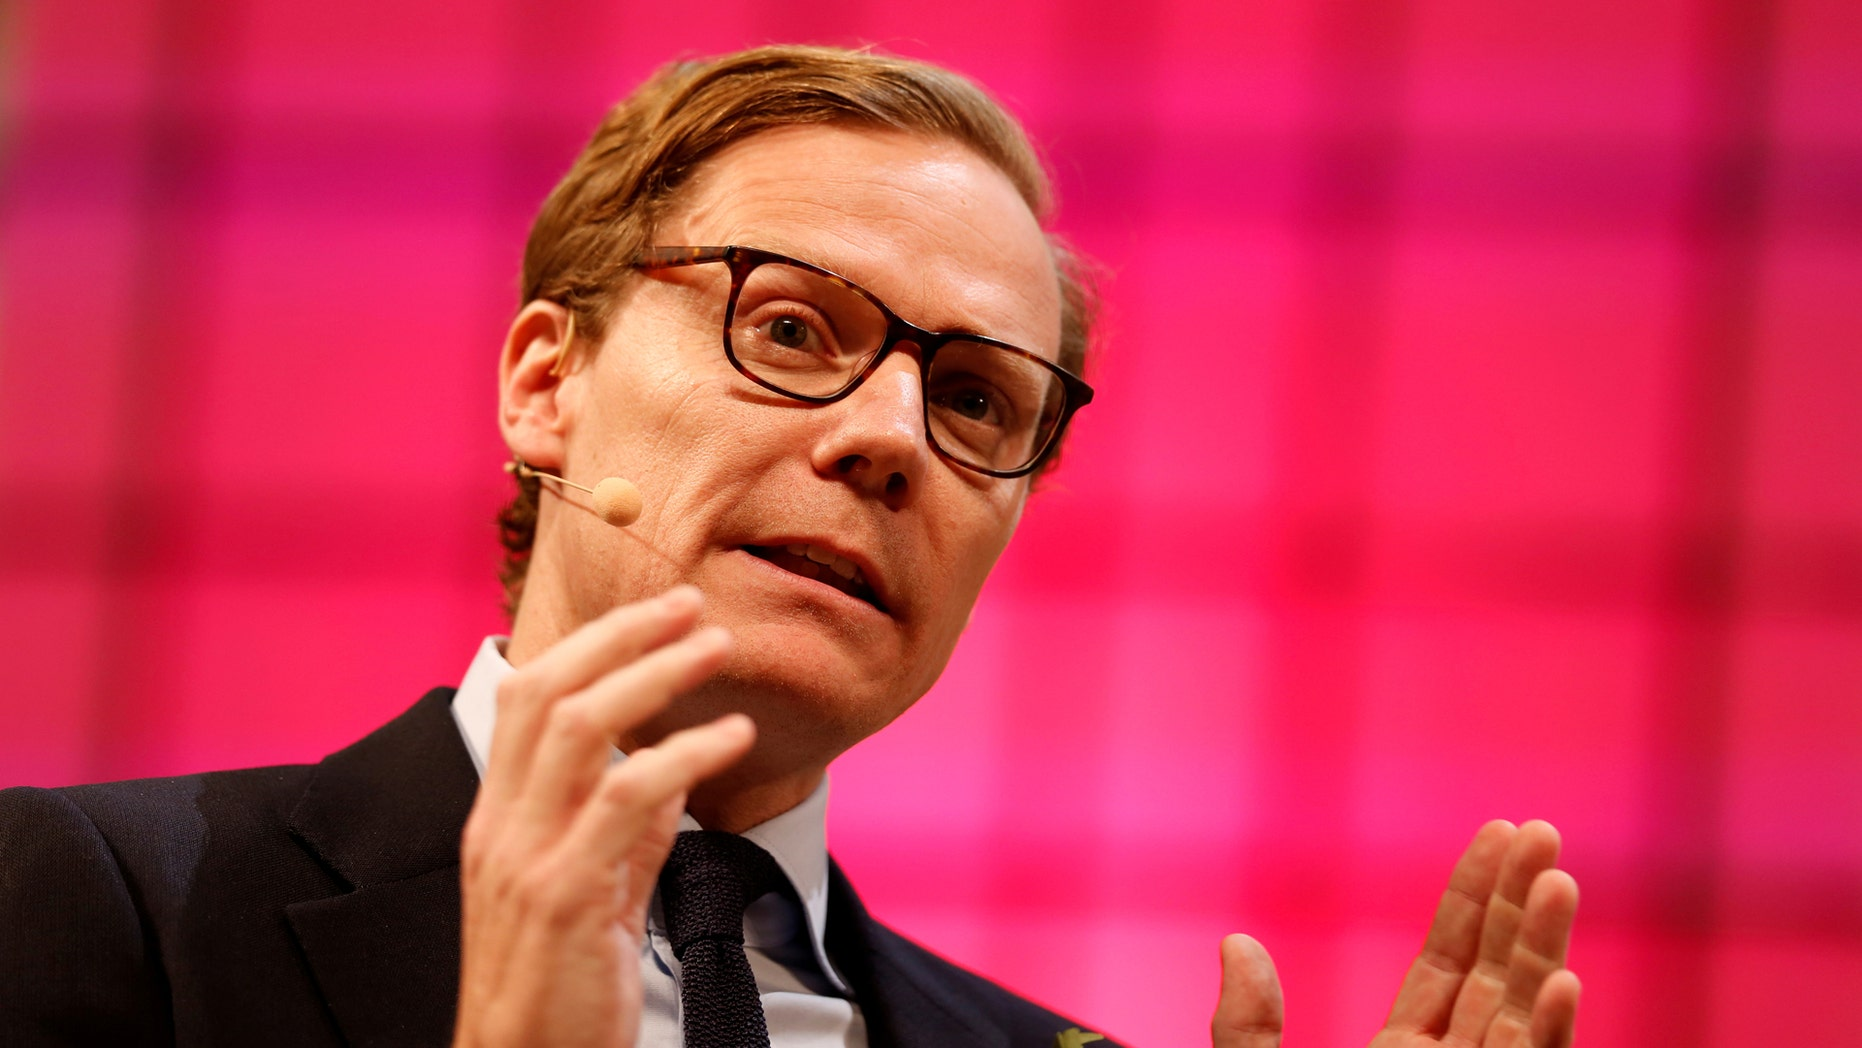 FILE PHOTO: CEO of Cambridge Analytica, Alexander Nix, speaks during the Web Summit, Europe's biggest tech conference, in Lisbon, Portugal, November 9, 2017. (REUTERS/Pedro Nunes/File Photo)